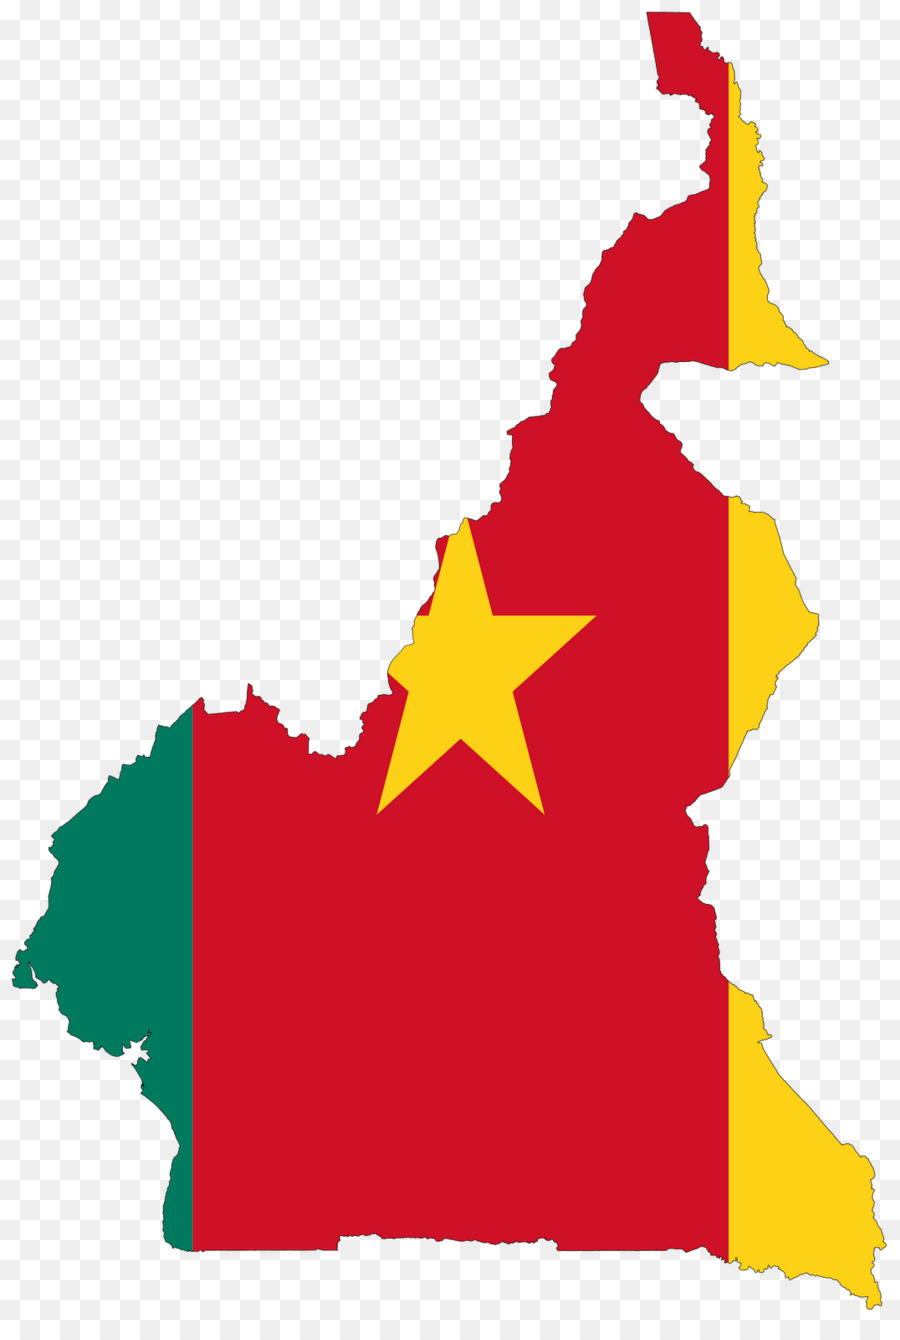 Flag of Cameroon World map - map png download - 1076*1600 - Free ...